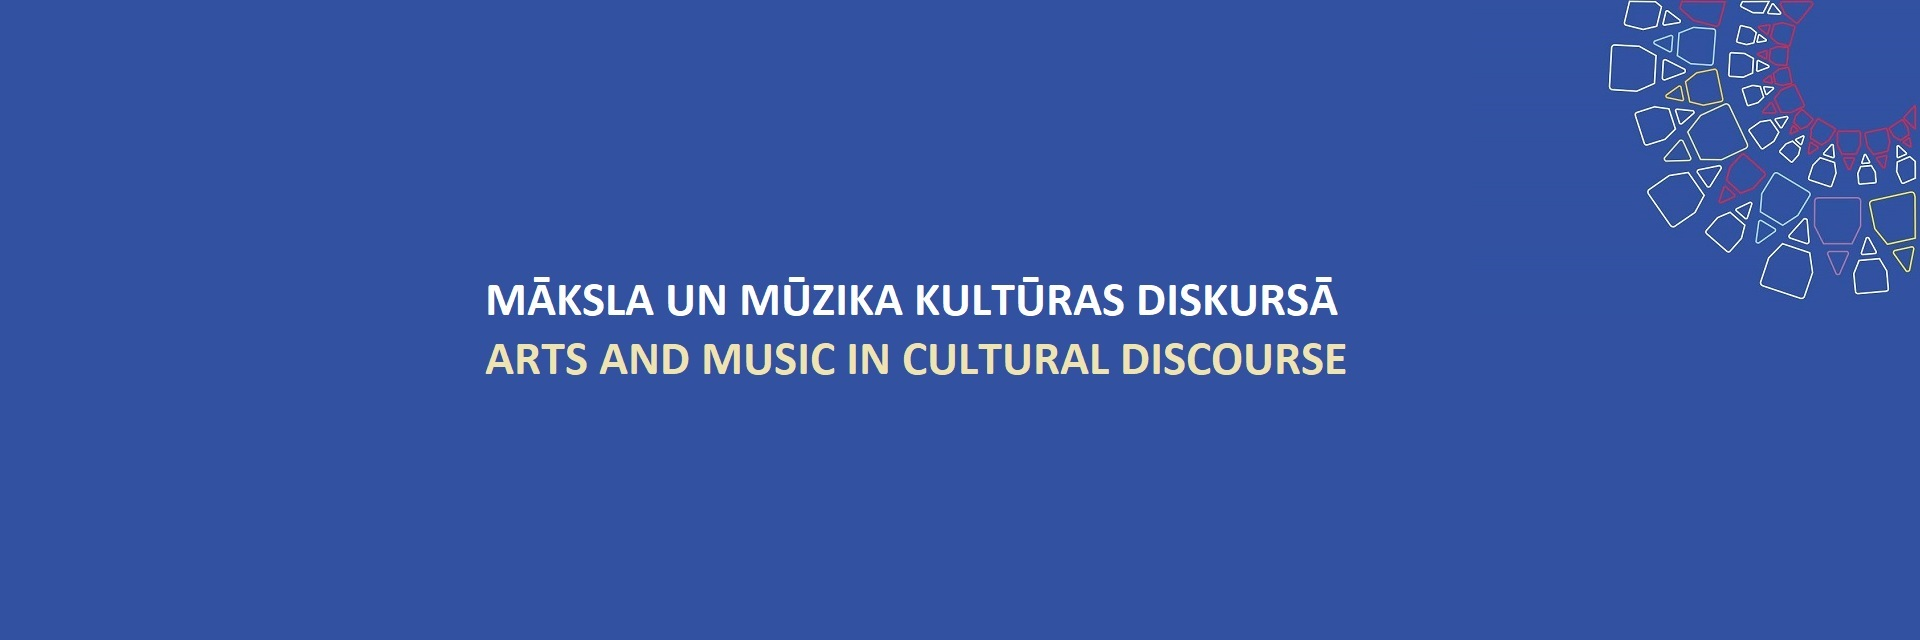 ARTS AND MUSIC IN CULTURAL DISCOURSE. Proceedings of the 4th International Scientific and Practical Conference